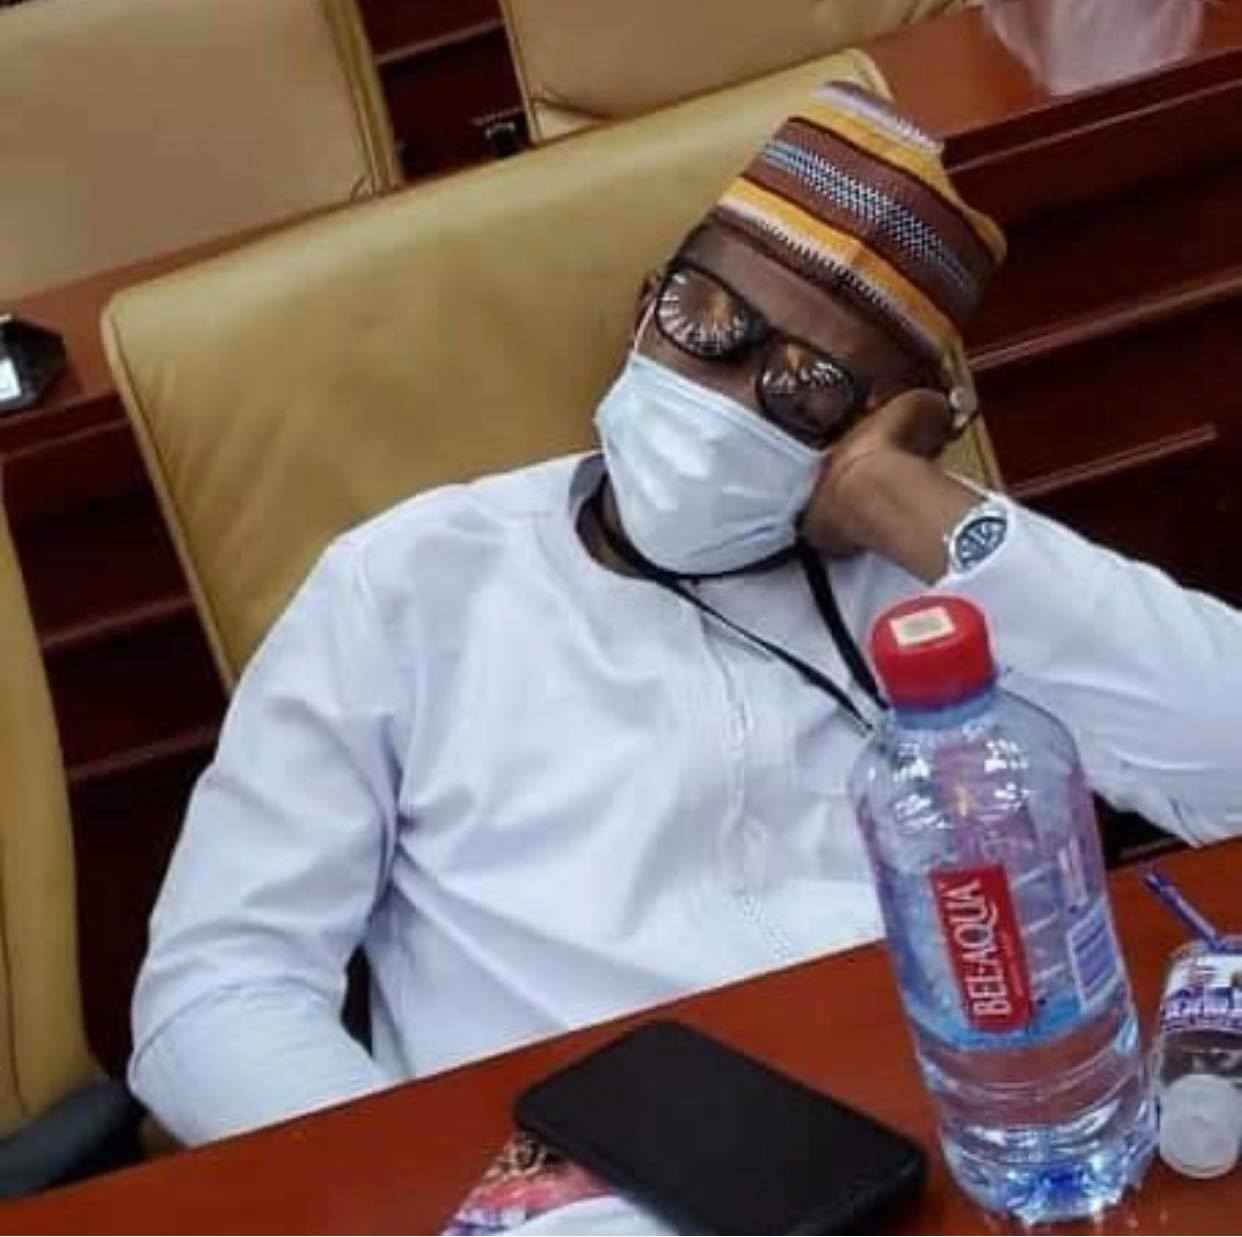 npp%2Bmps4 - Photos Of NPP MP Sleeping In Parliament After Reporting 4am To Take Over Majority Seat Pops Up